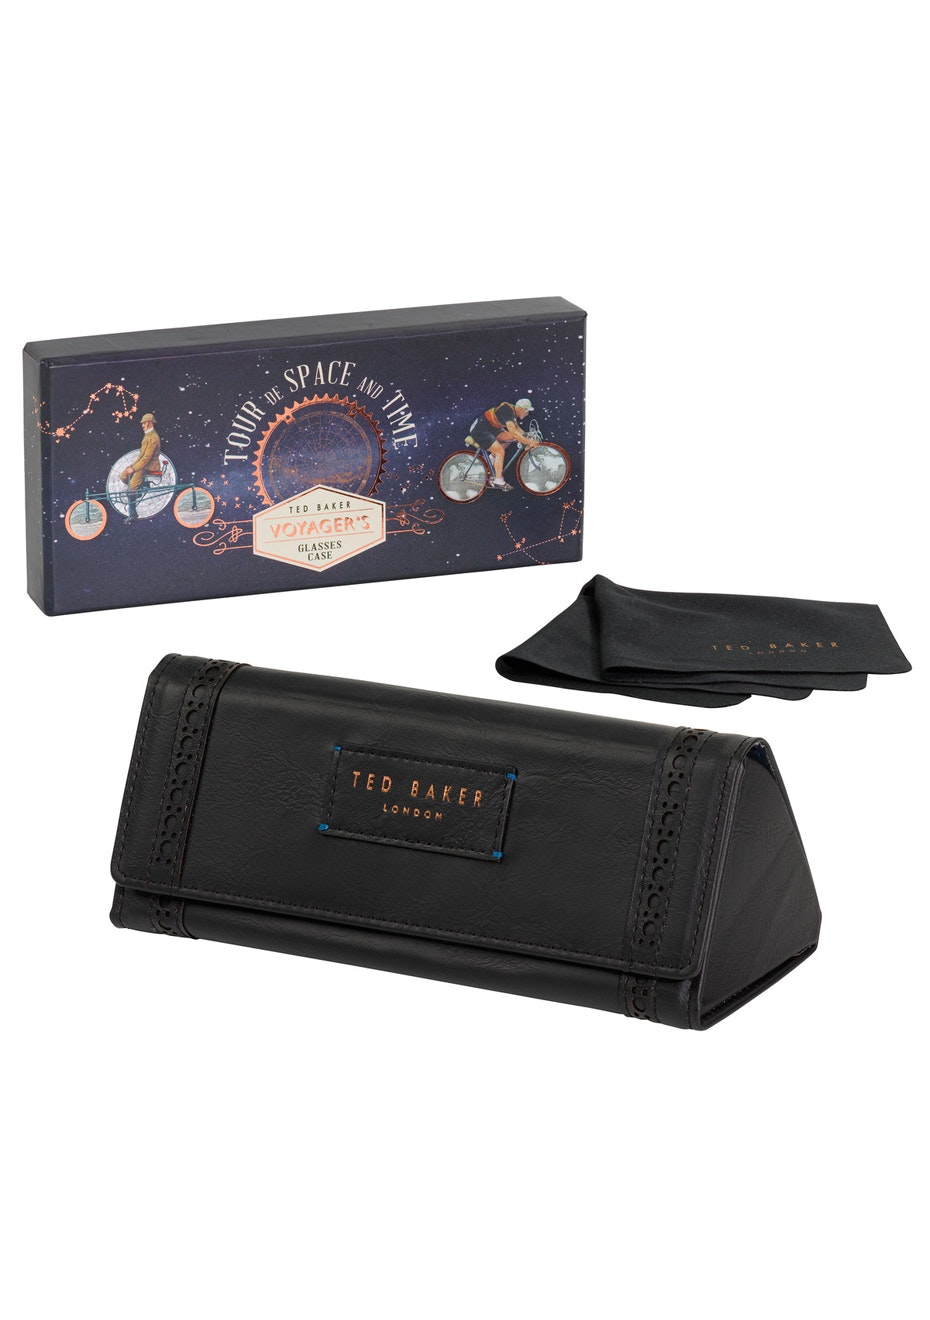 Ted Baker - Mens Brogue Folding Glasses Case -